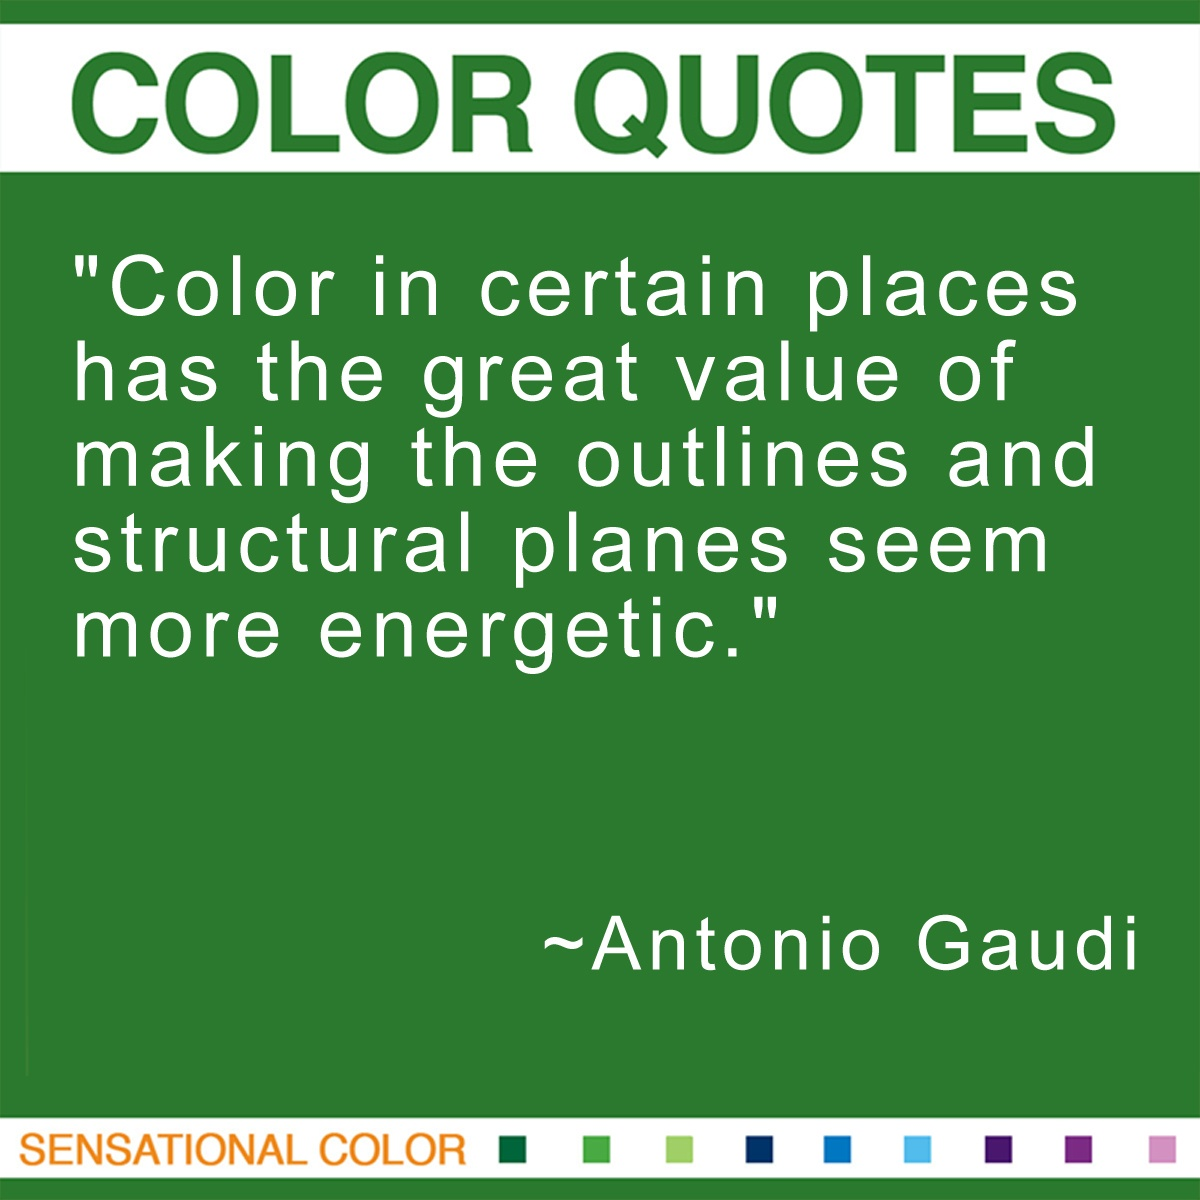 """Color in certain places has the great value of making the outlines and structural planes seem more energetic."" - Antonio Gaudi"